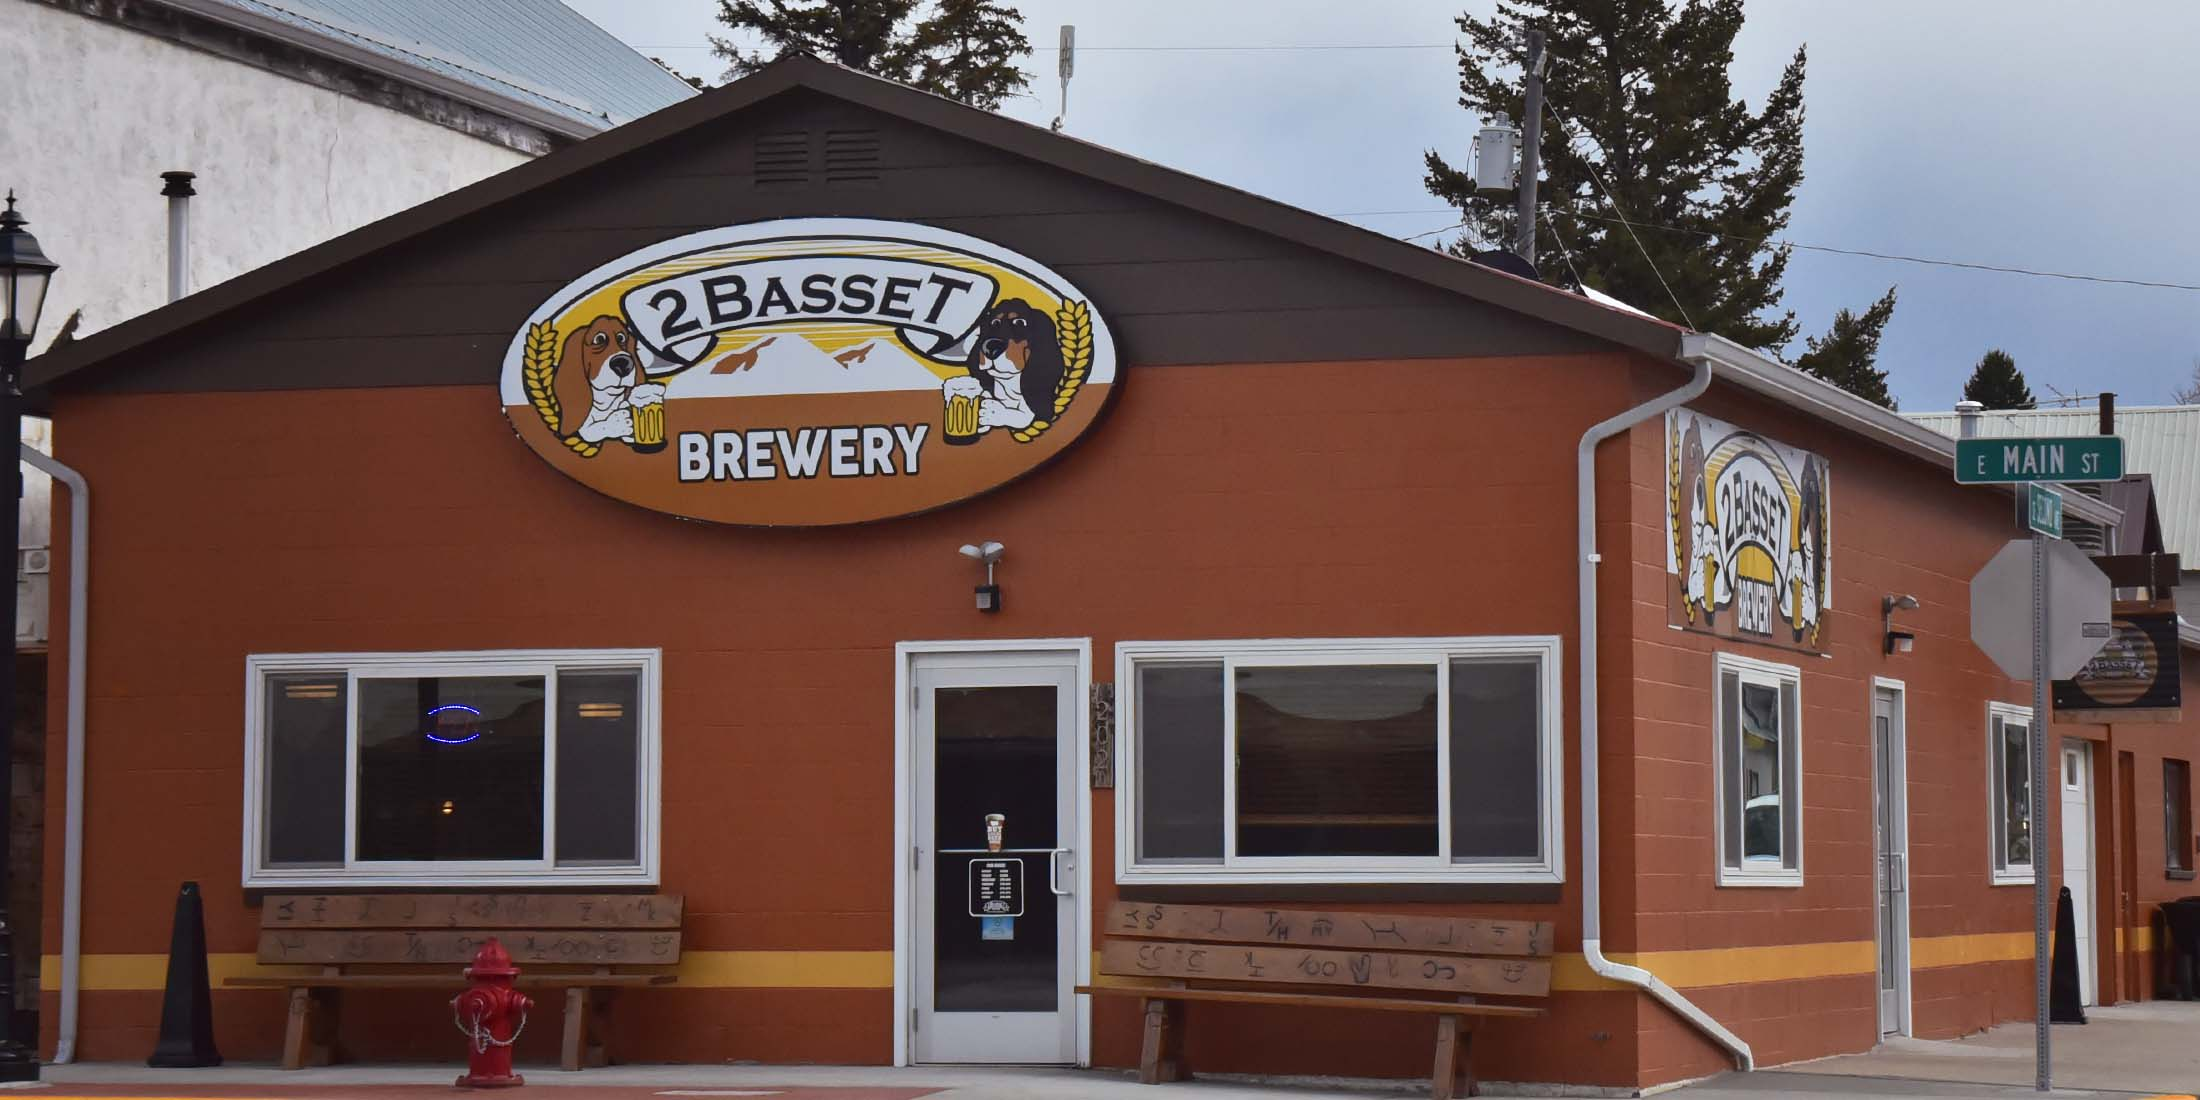 Experience the 2 Basset Fever! Excellent brews and good times located at 202 E Main St, White Sulphur Springs, MT 59645